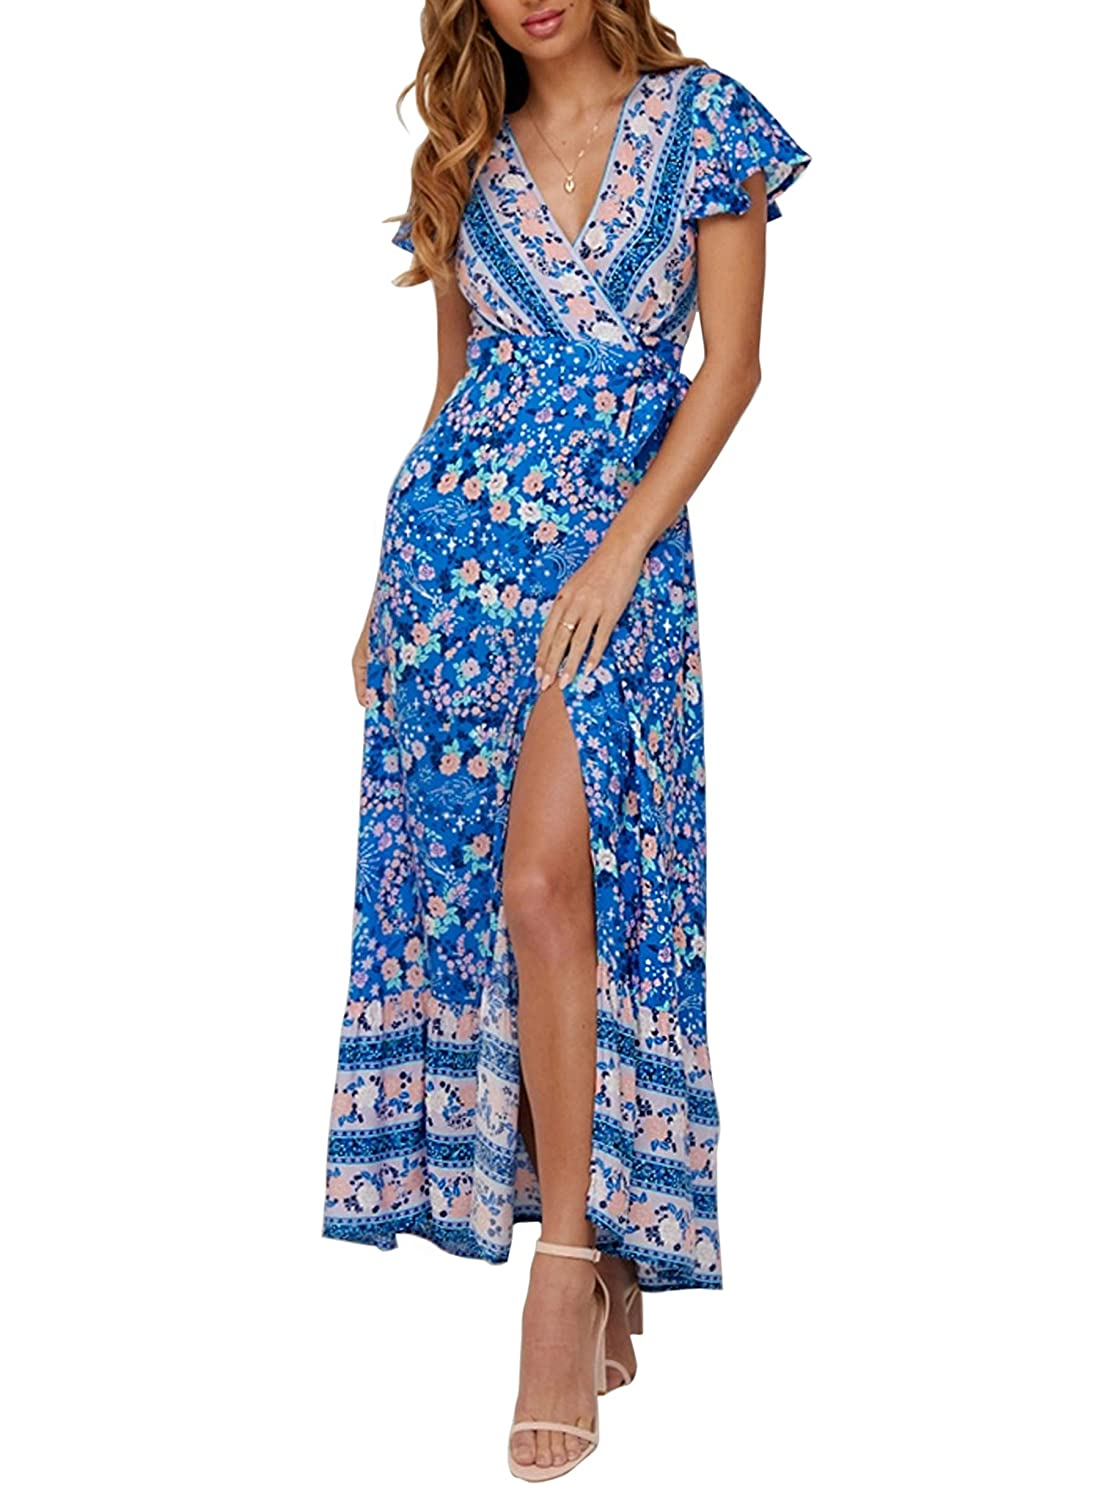 b79b0005dac ZESICA Women s Bohemian Floral Printed Wrap V Neck Short Sleeve Split Beach  Party Maxi Dress at Amazon Women s Clothing store